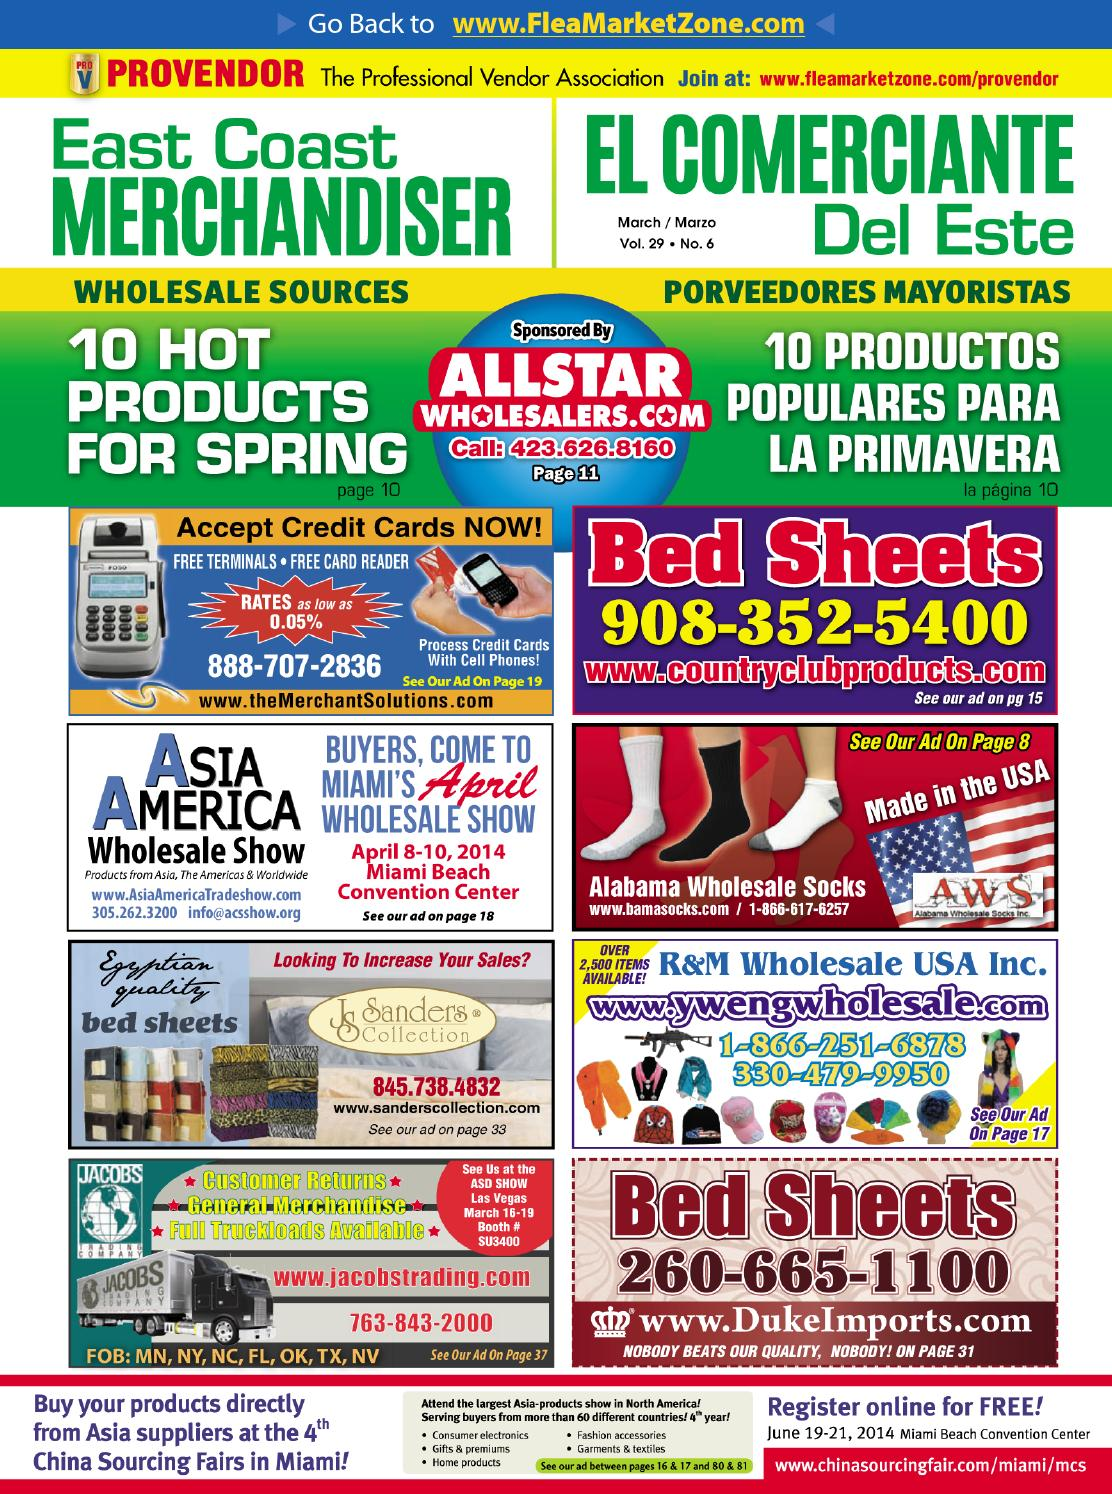 East Coast Merchandiser 03 14 by Sumner Communications issuu